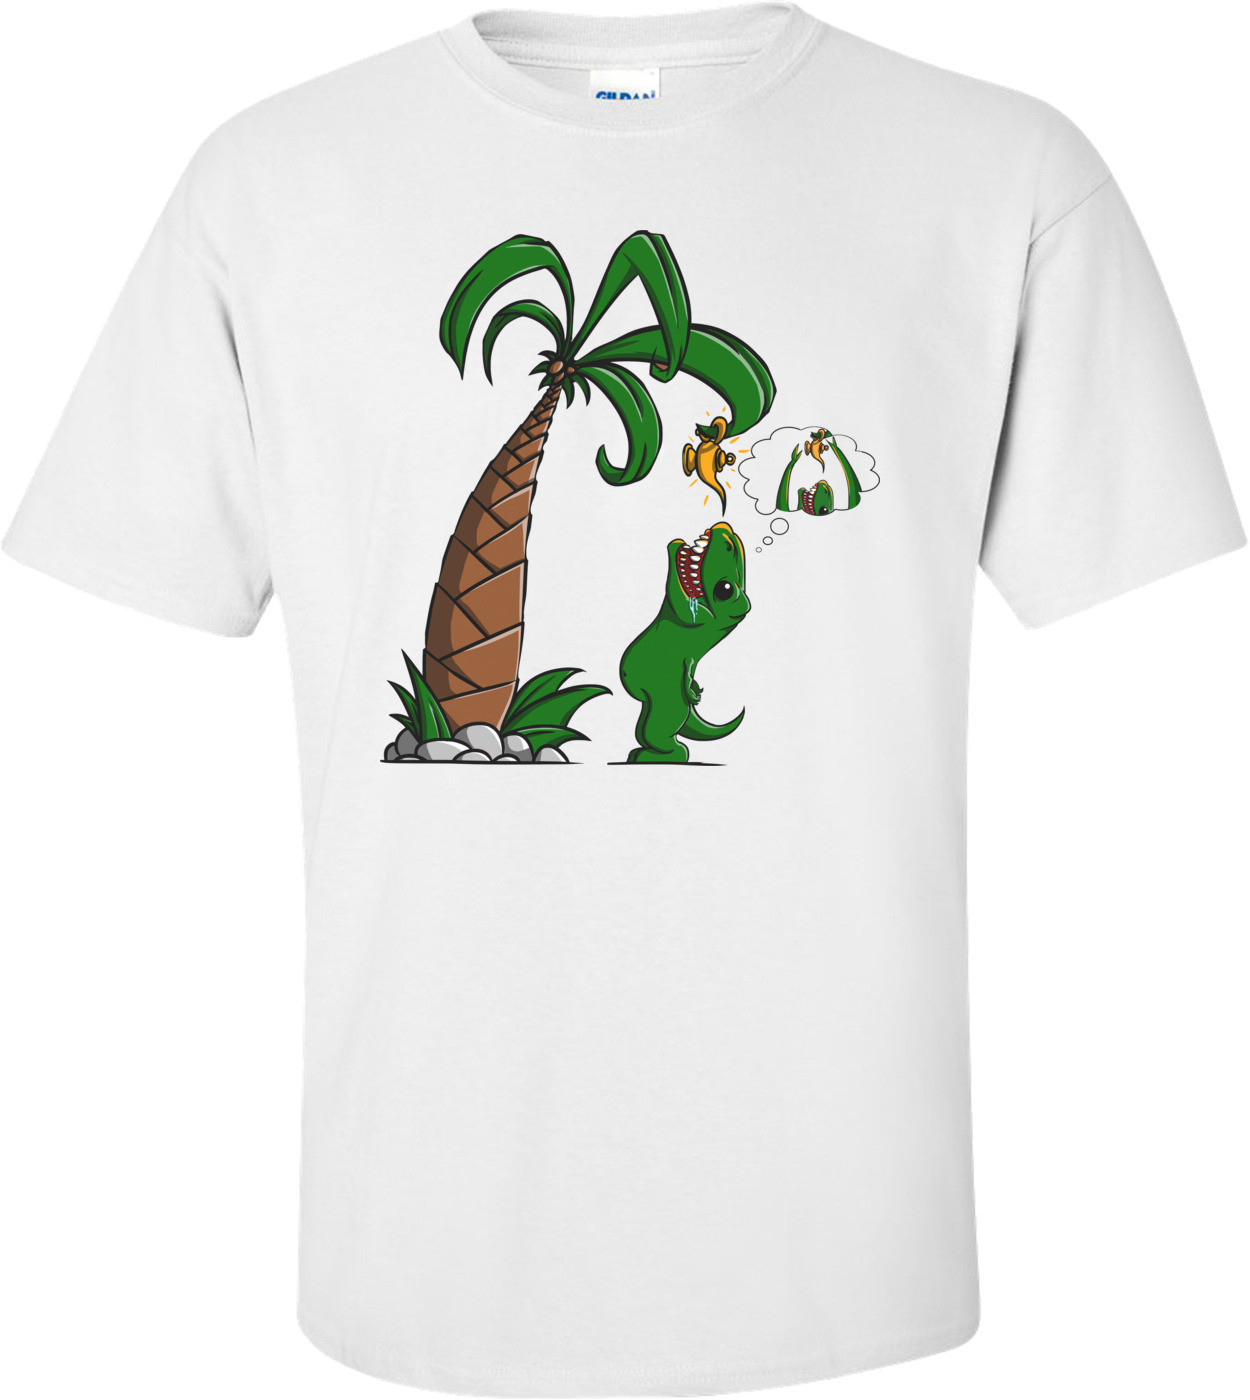 T-rex Wants To Make A Wish Shirt